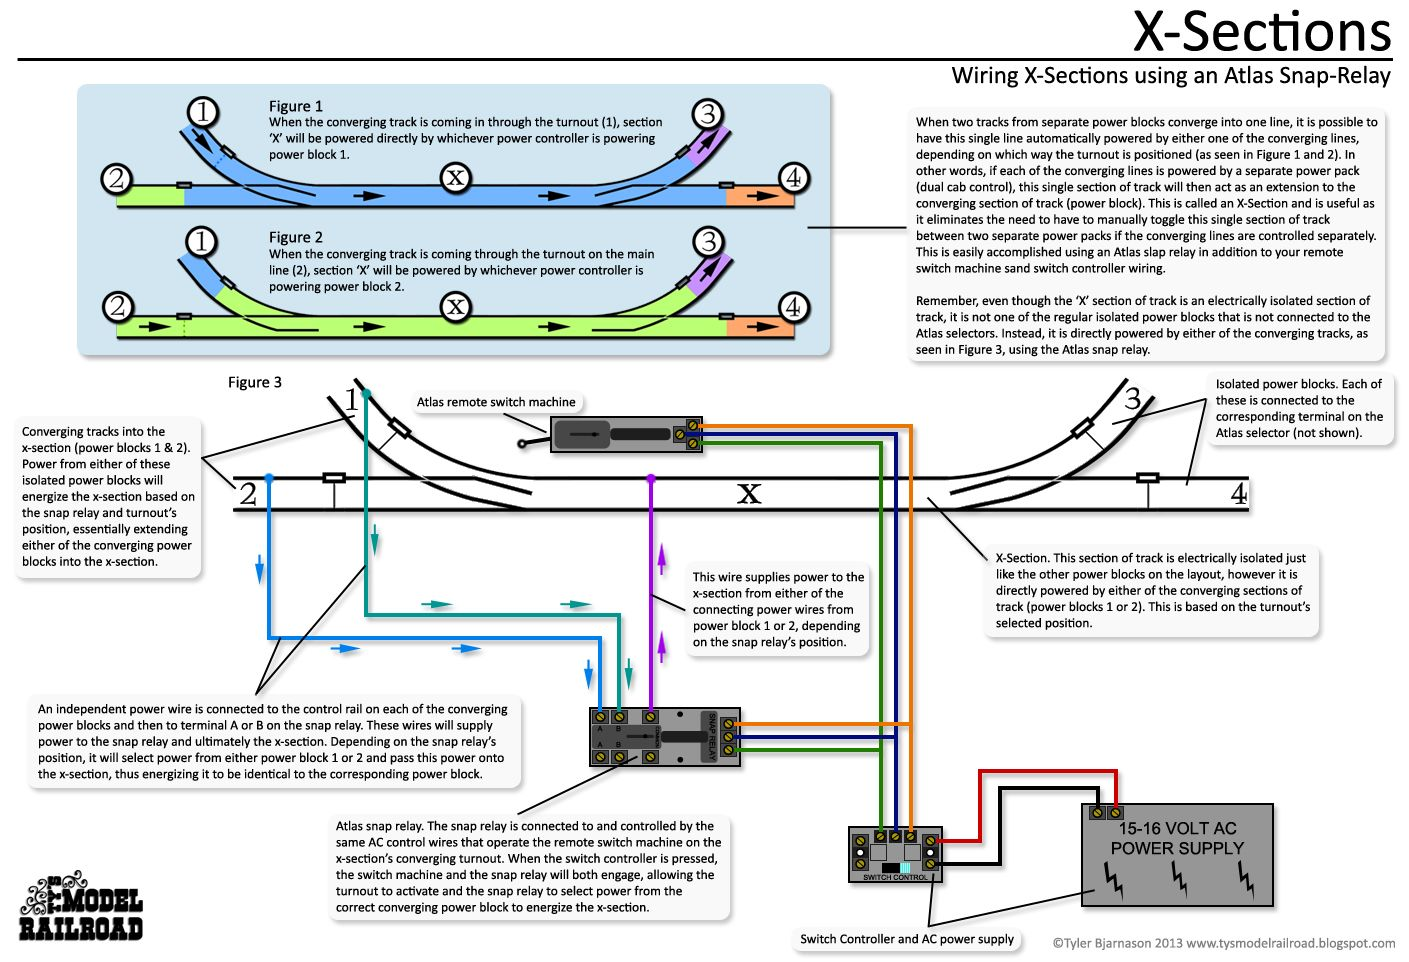 how to wire an x section using an atlas snap relay and existing remote switch machine wiring  [ 1409 x 962 Pixel ]